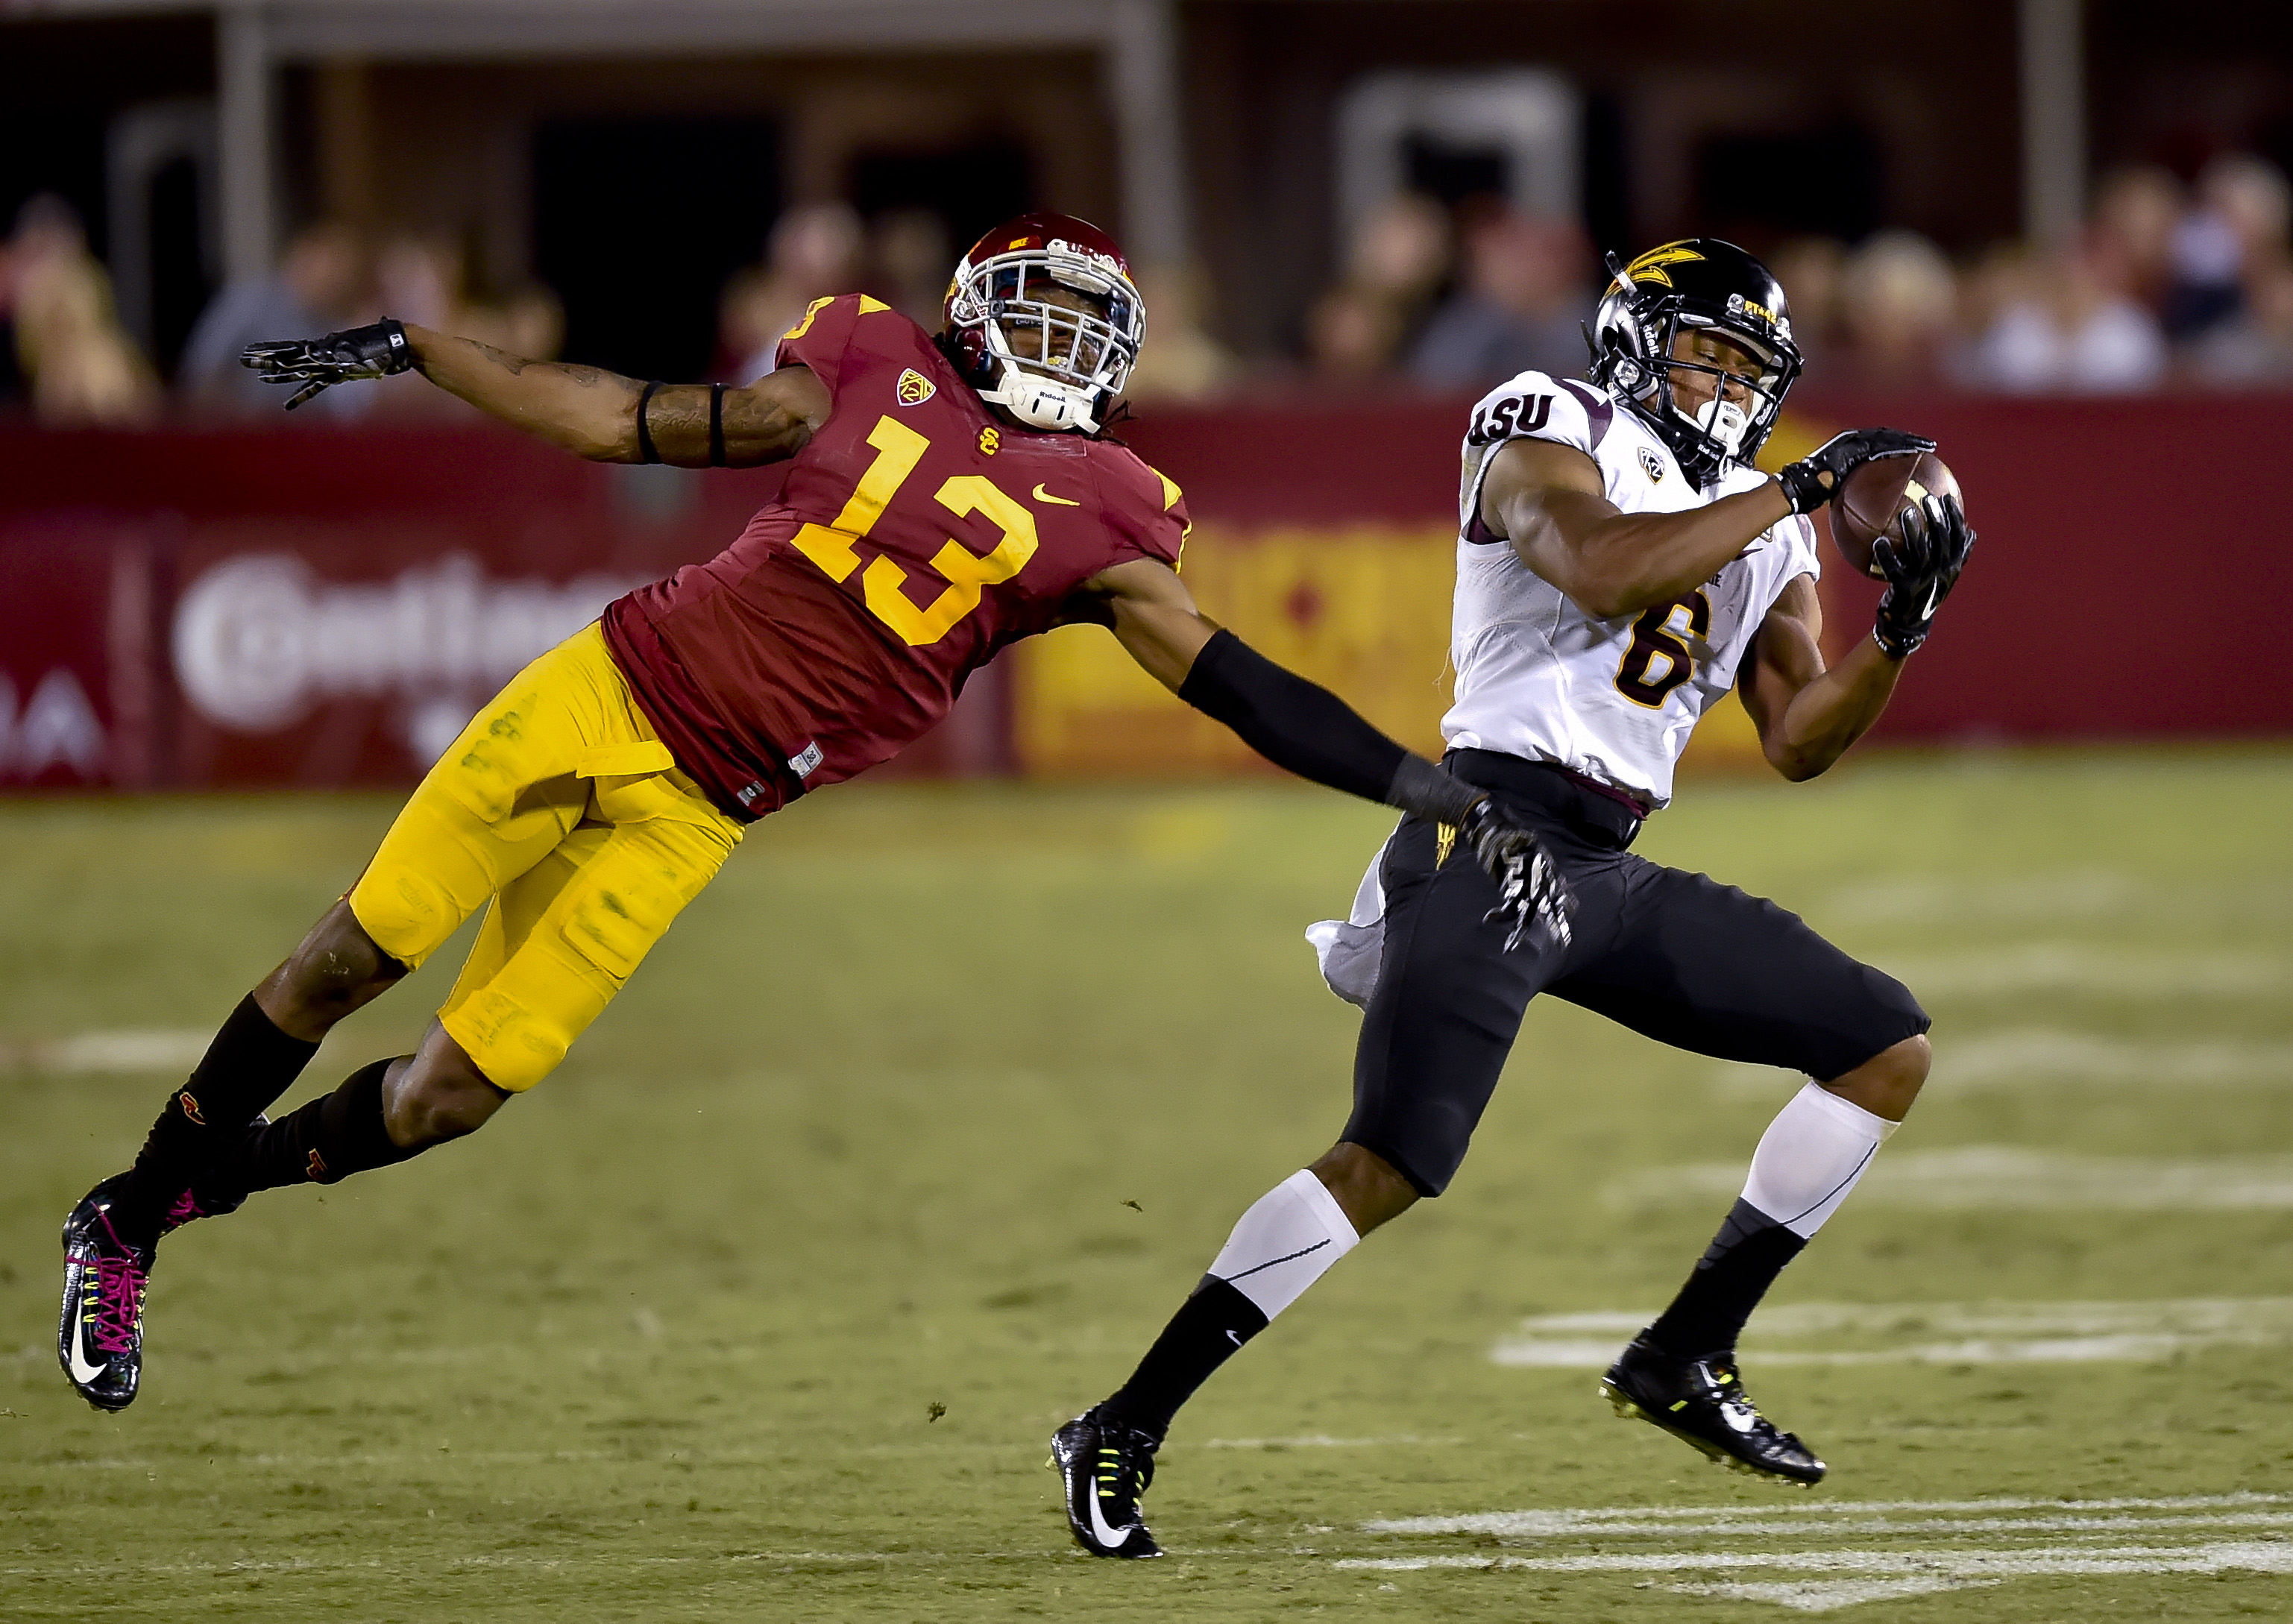 FILE - In this Oct. 4, 2014, file photo, Arizona State wide receiver Cameron Smith (6) gets by Southern California cornerback Kevon Seymour (13) on a touchdown reception during an NCAA college football game in Los Angeles. Arizona State has won two straig